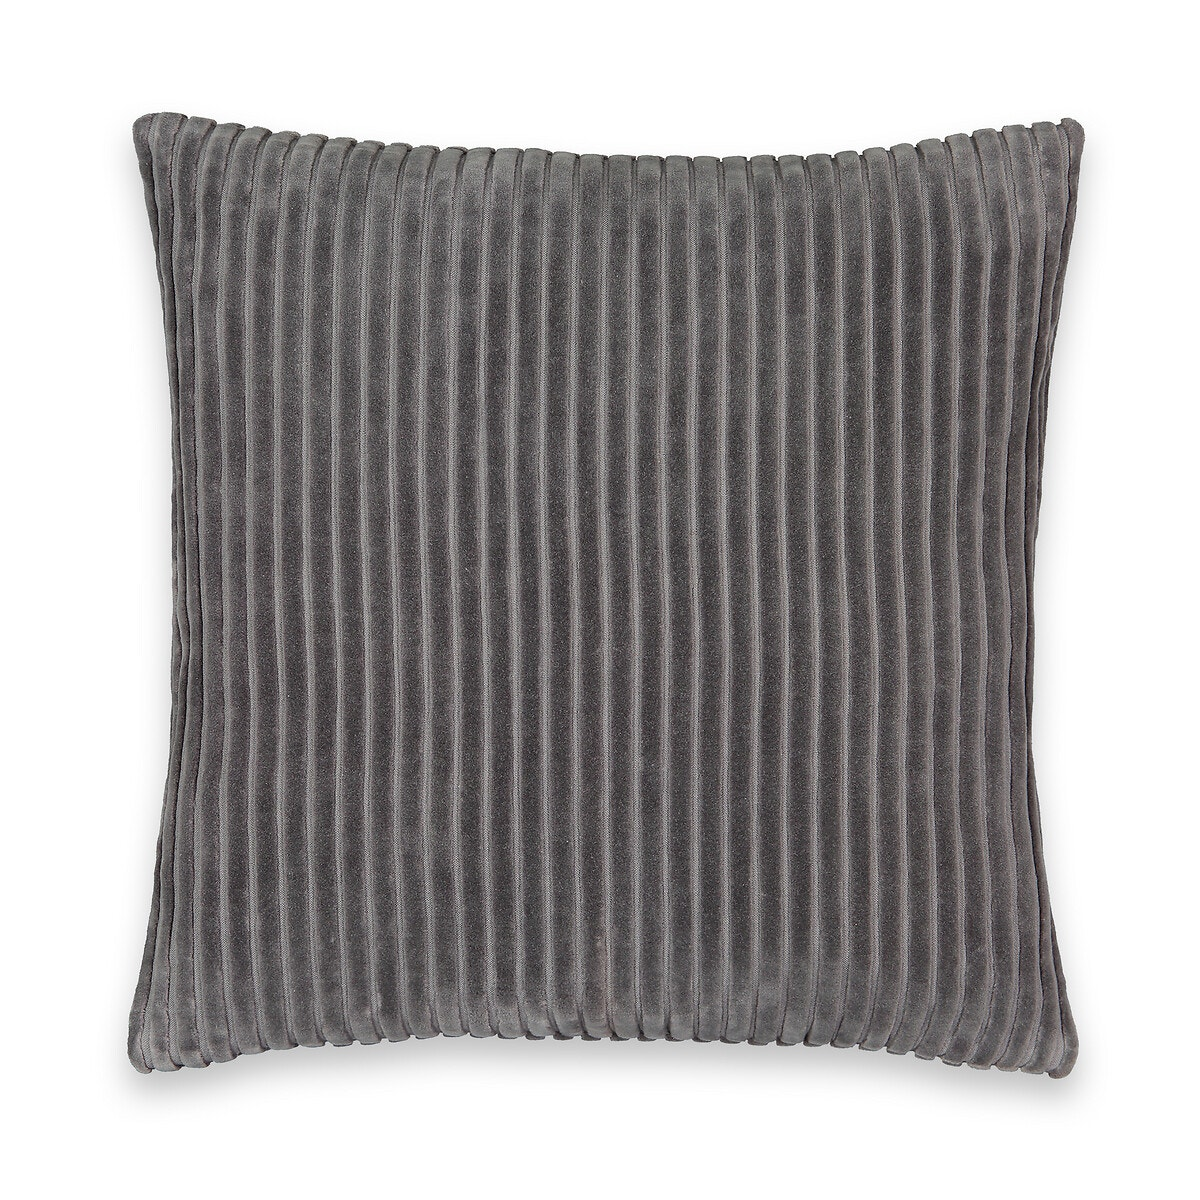 Corduroy Corded Velvet Cushion Cover